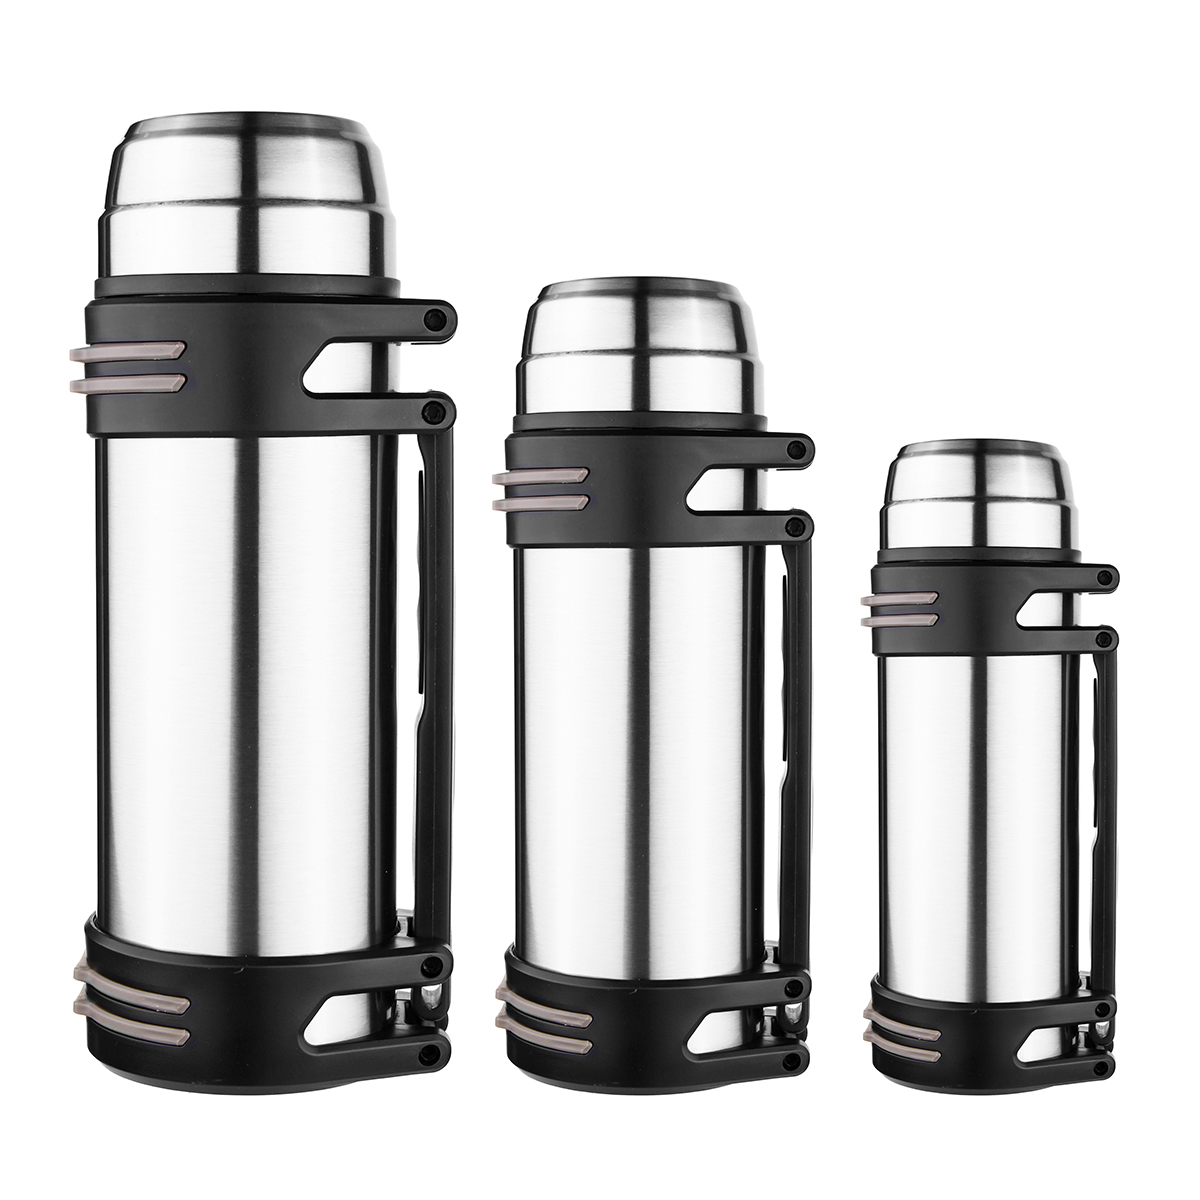 1.2-2L Stainless Steel Insulated Thermos Cup Water Mug Vacuum Fl